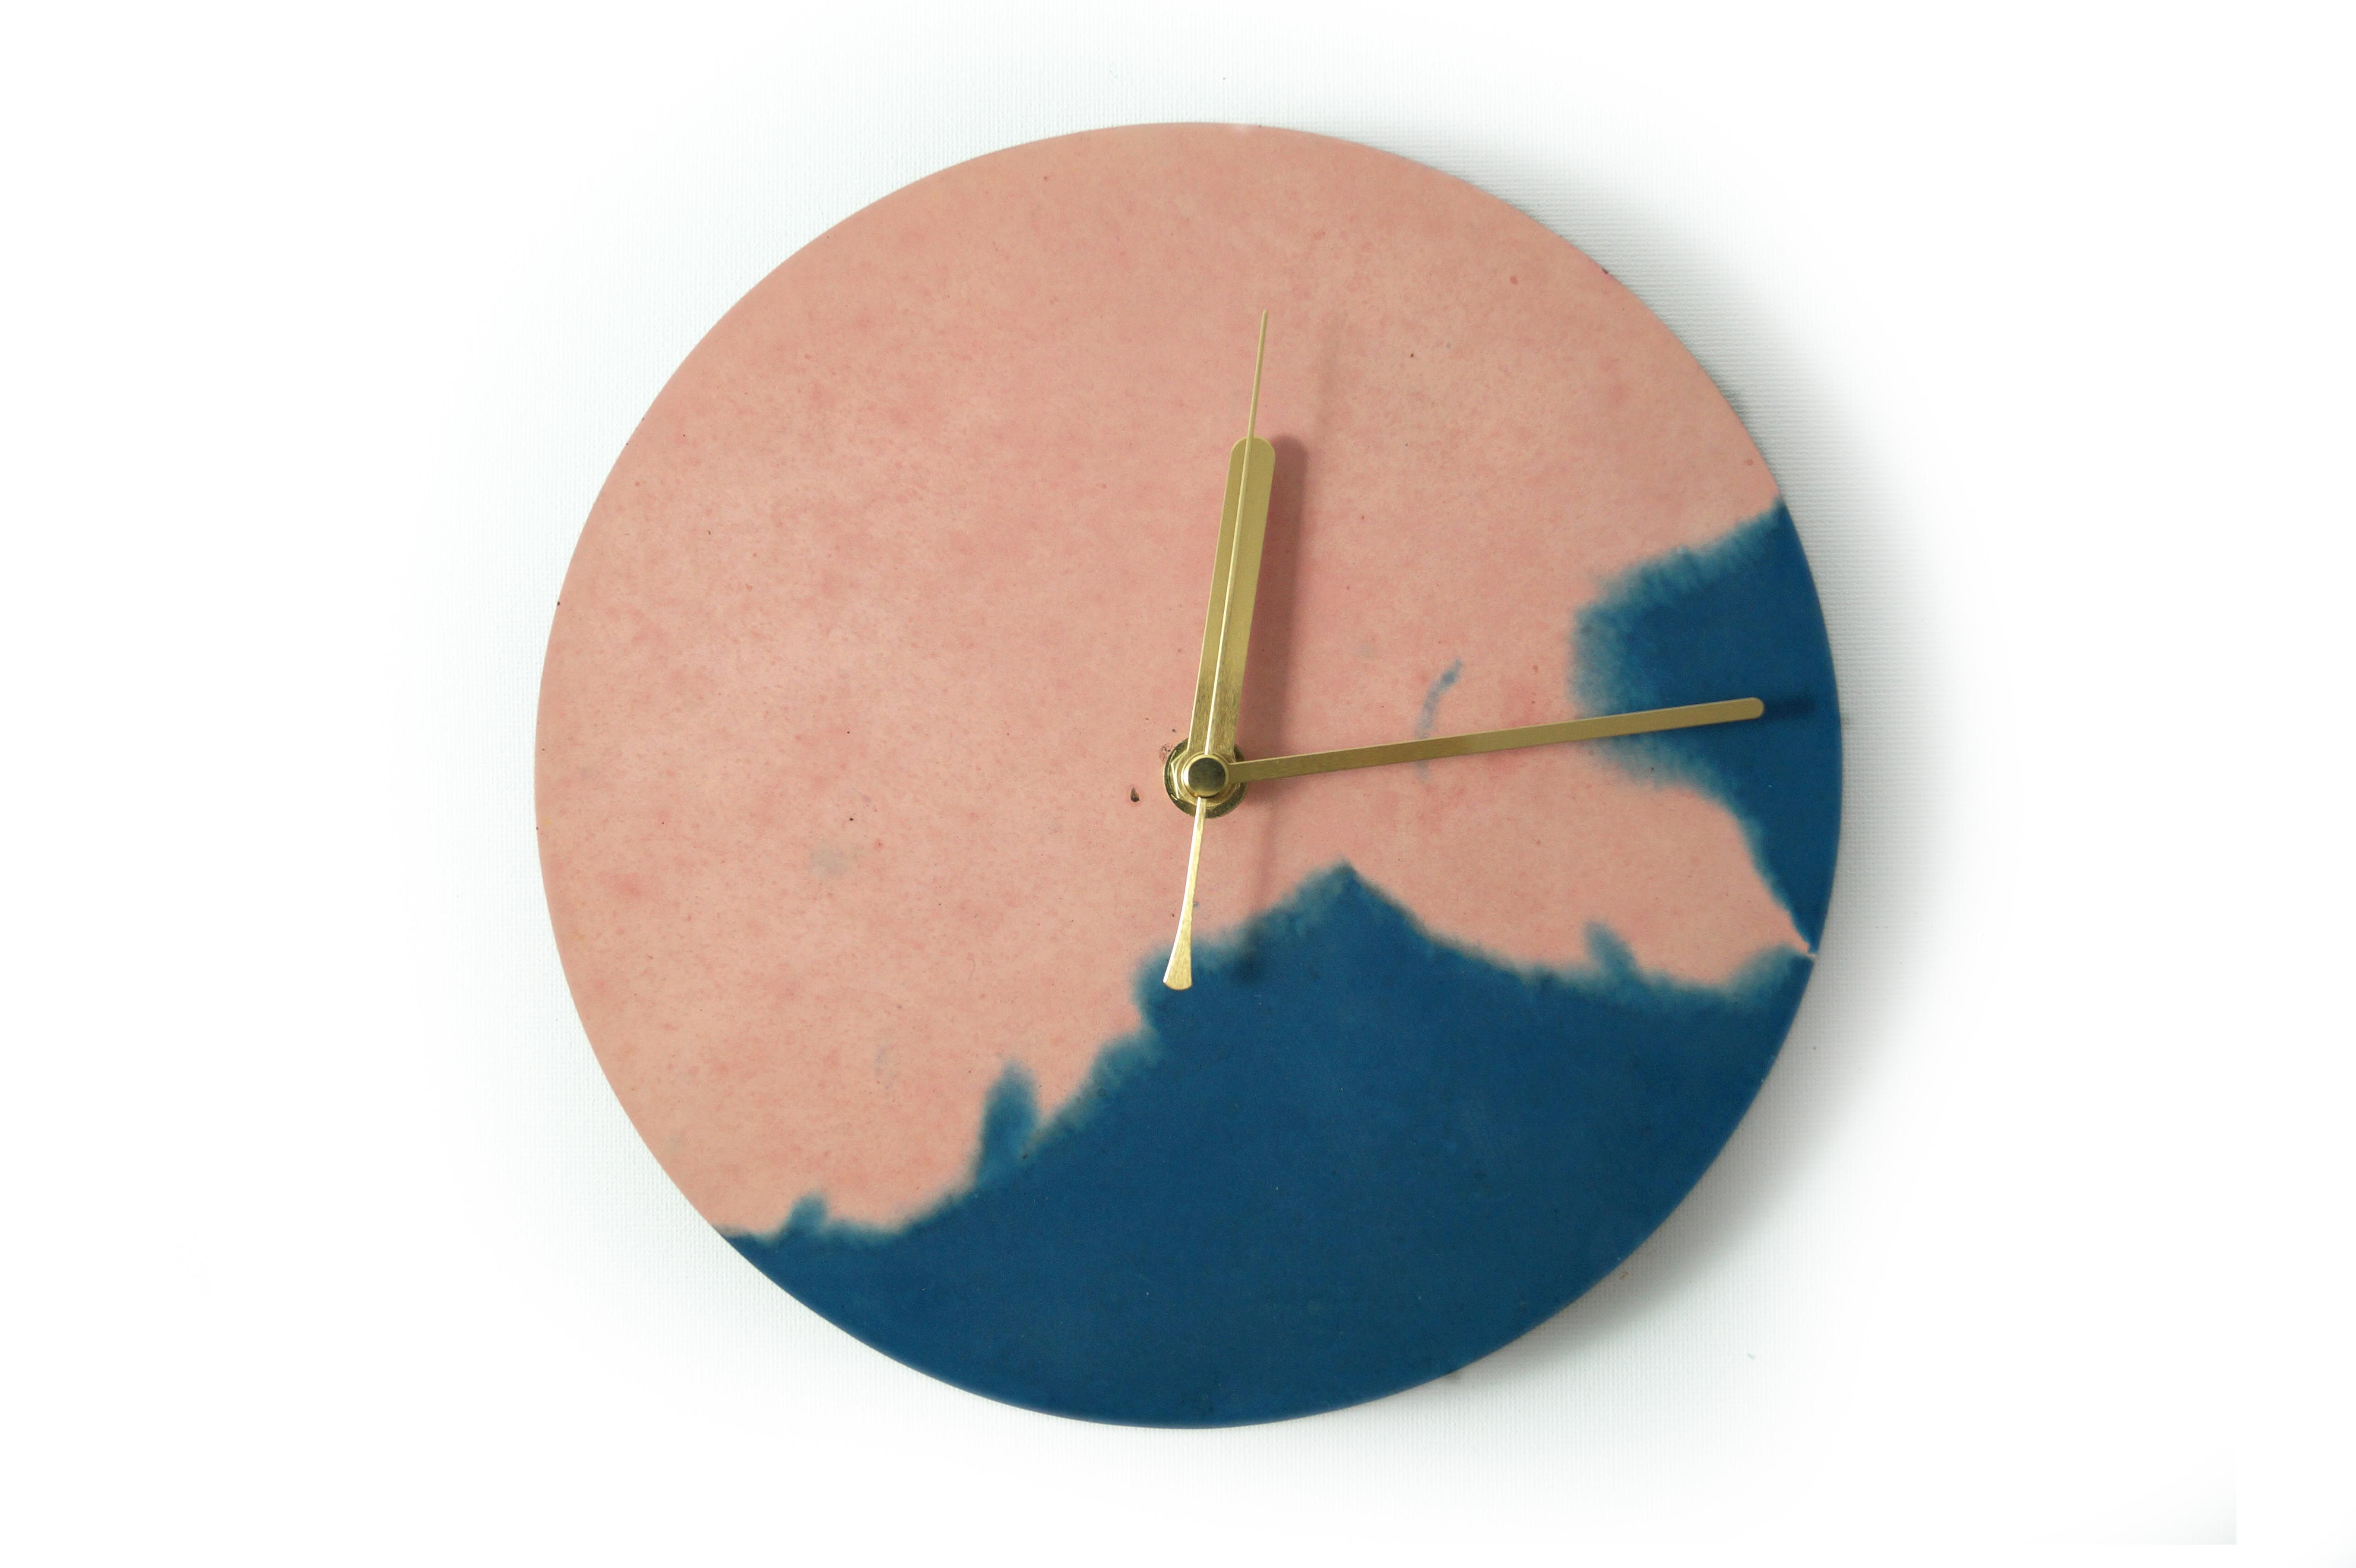 Navy Blue Nude Clock Studio Emma Pinterest Concrete  # Faire Support Aquarium Beton Cellulaire